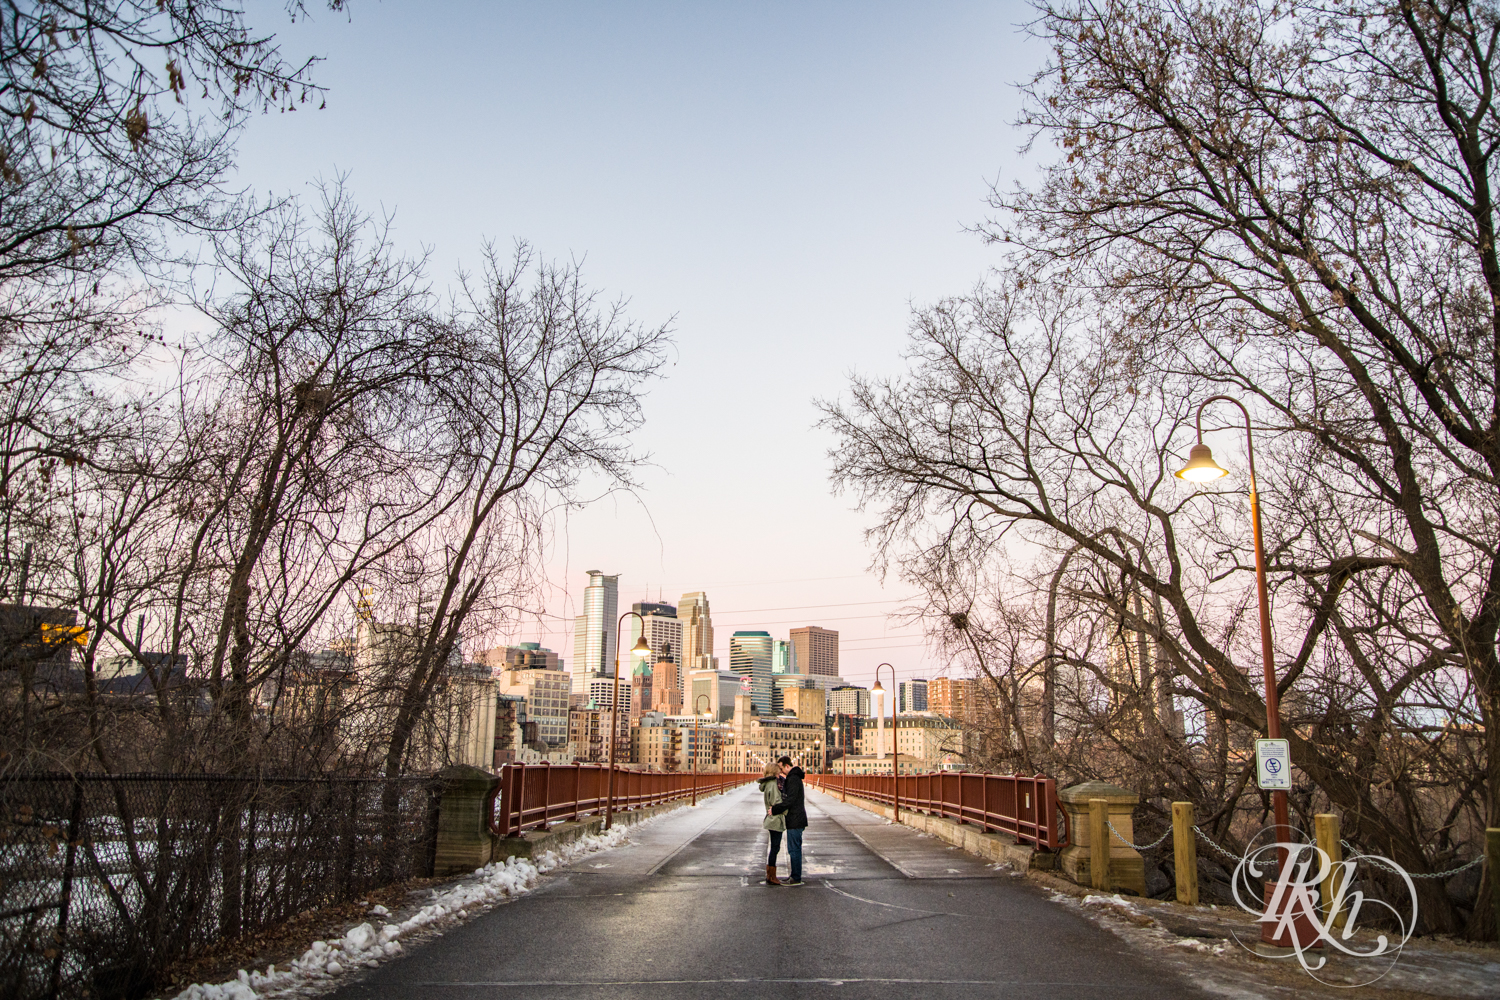 Kate & Kyle - Minnesota Sunrise Engagement Photography - Stone Arch Bridge - RKH Images (9 of 18).jpg